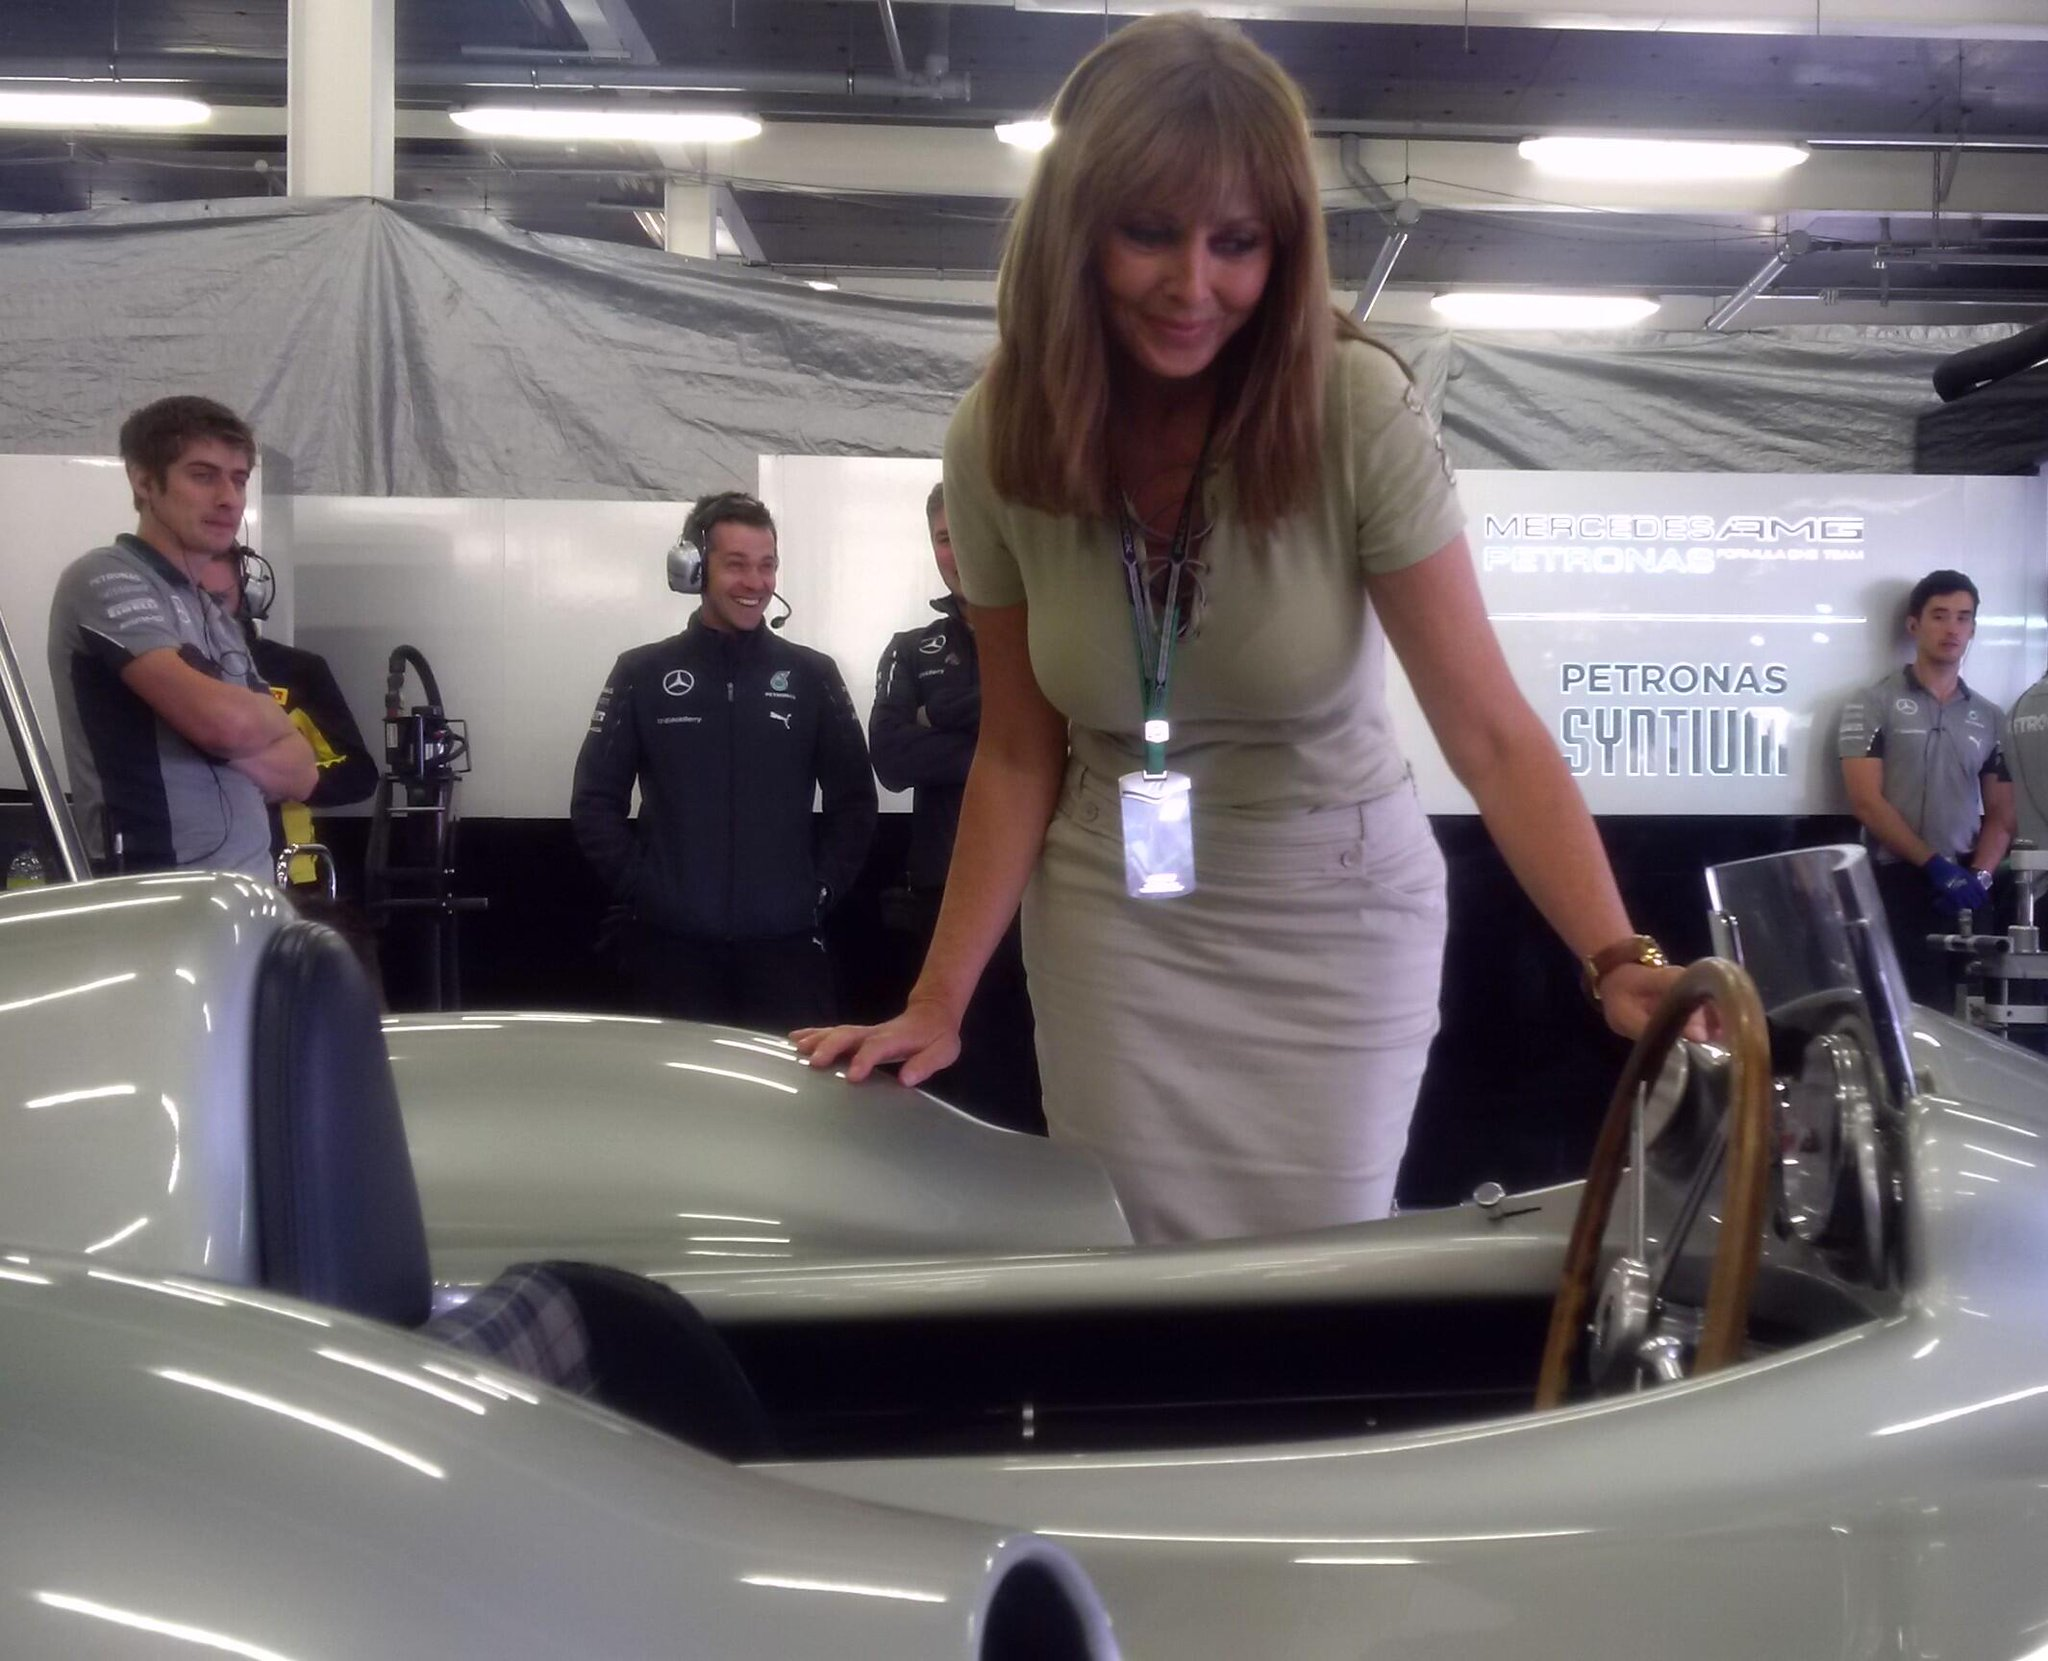 RT @MercedesAMGF1: The @MercedesBenz W196R seems to have  an admirer... :) @carolvorders #BritishGP #F1 #SilverStunners http://t.co/PHZeKq8…